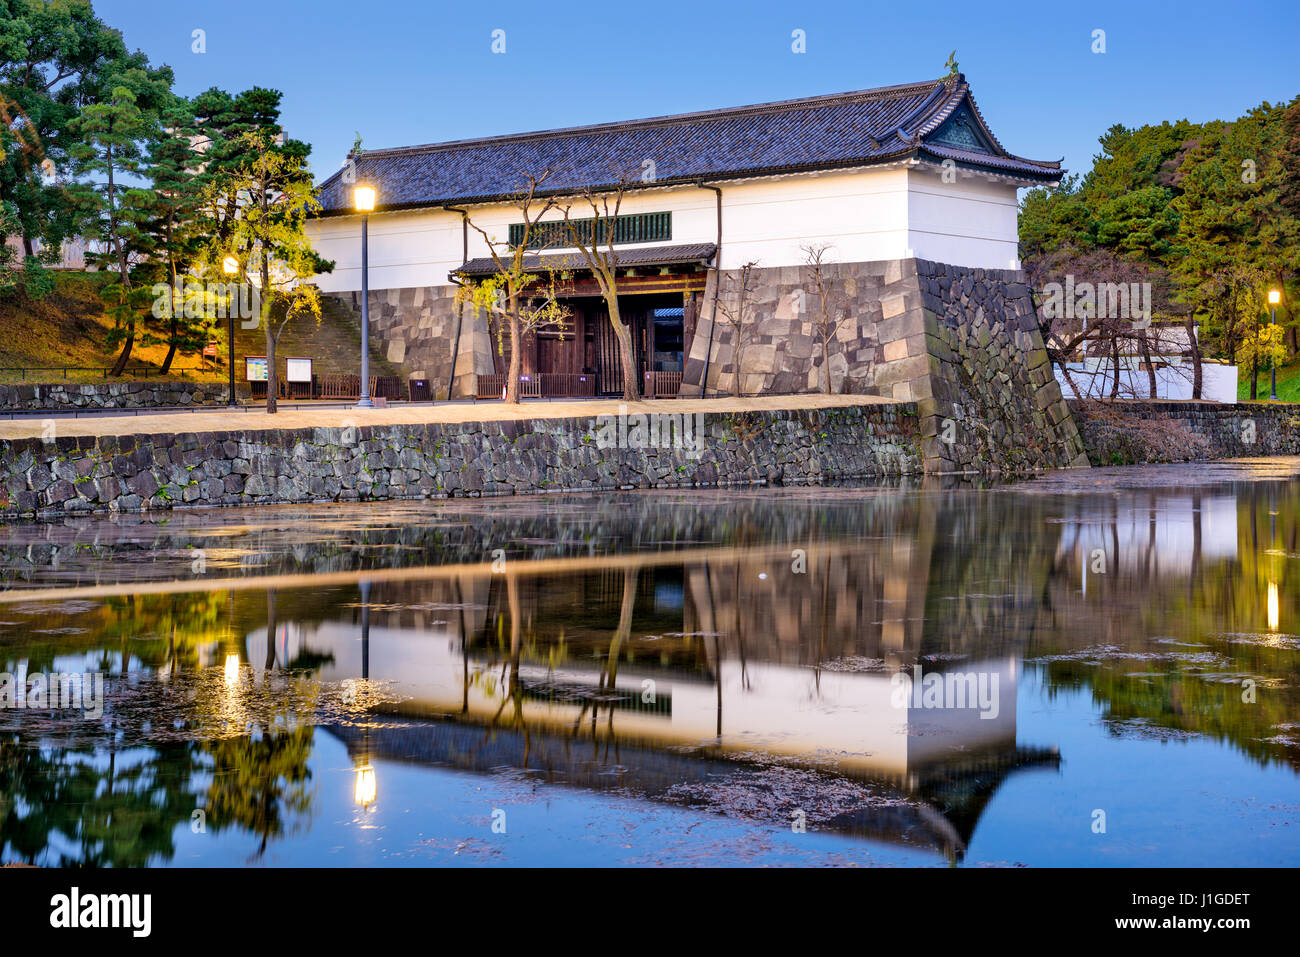 Tokyo, Japan Imperial Palace moat and gate. - Stock Image